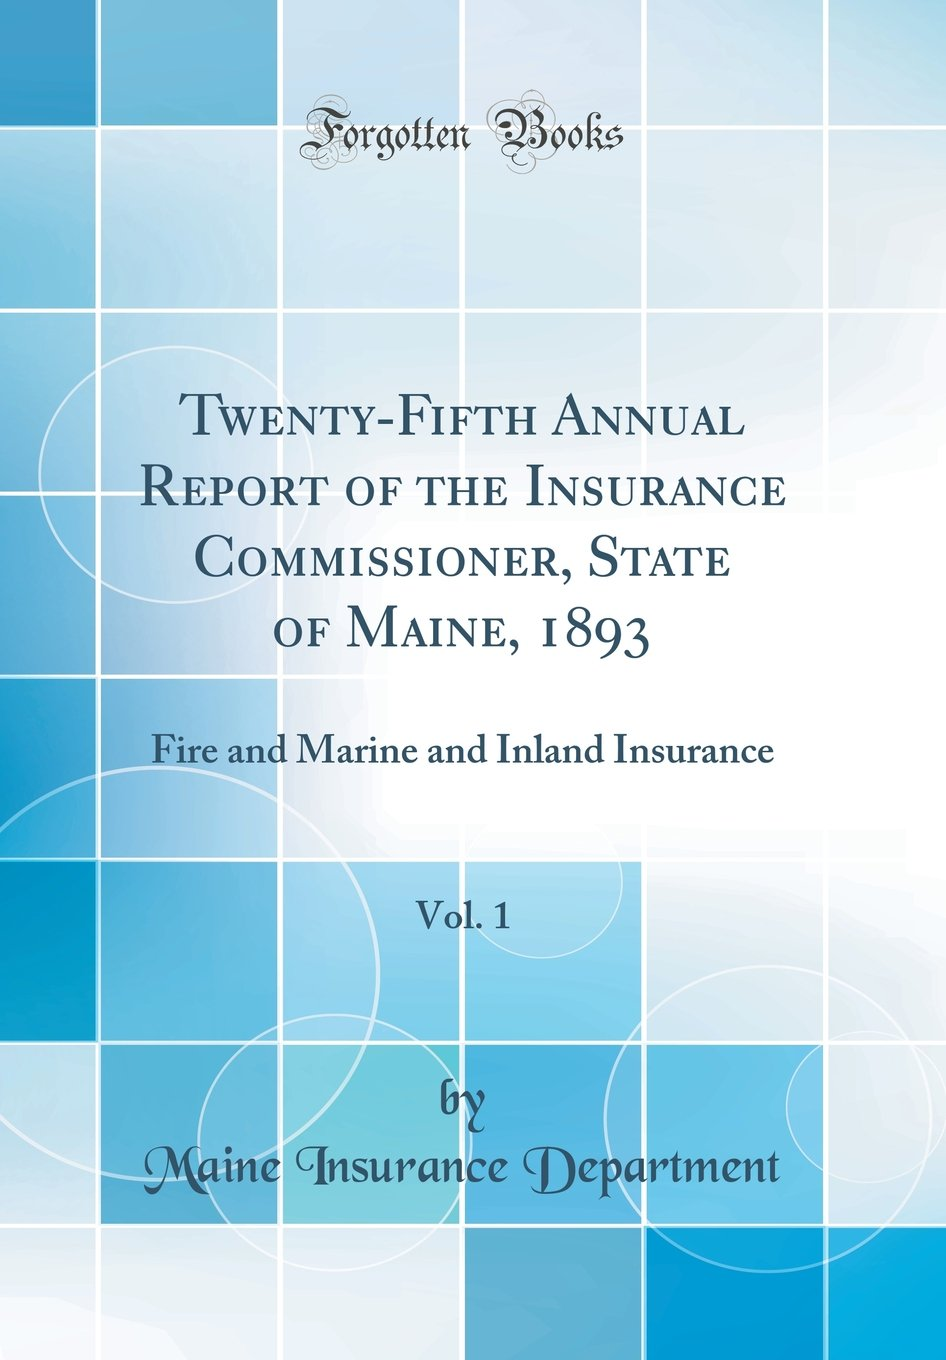 Read Online Twenty-Fifth Annual Report of the Insurance Commissioner, State of Maine, 1893, Vol. 1: Fire and Marine and Inland Insurance (Classic Reprint) PDF